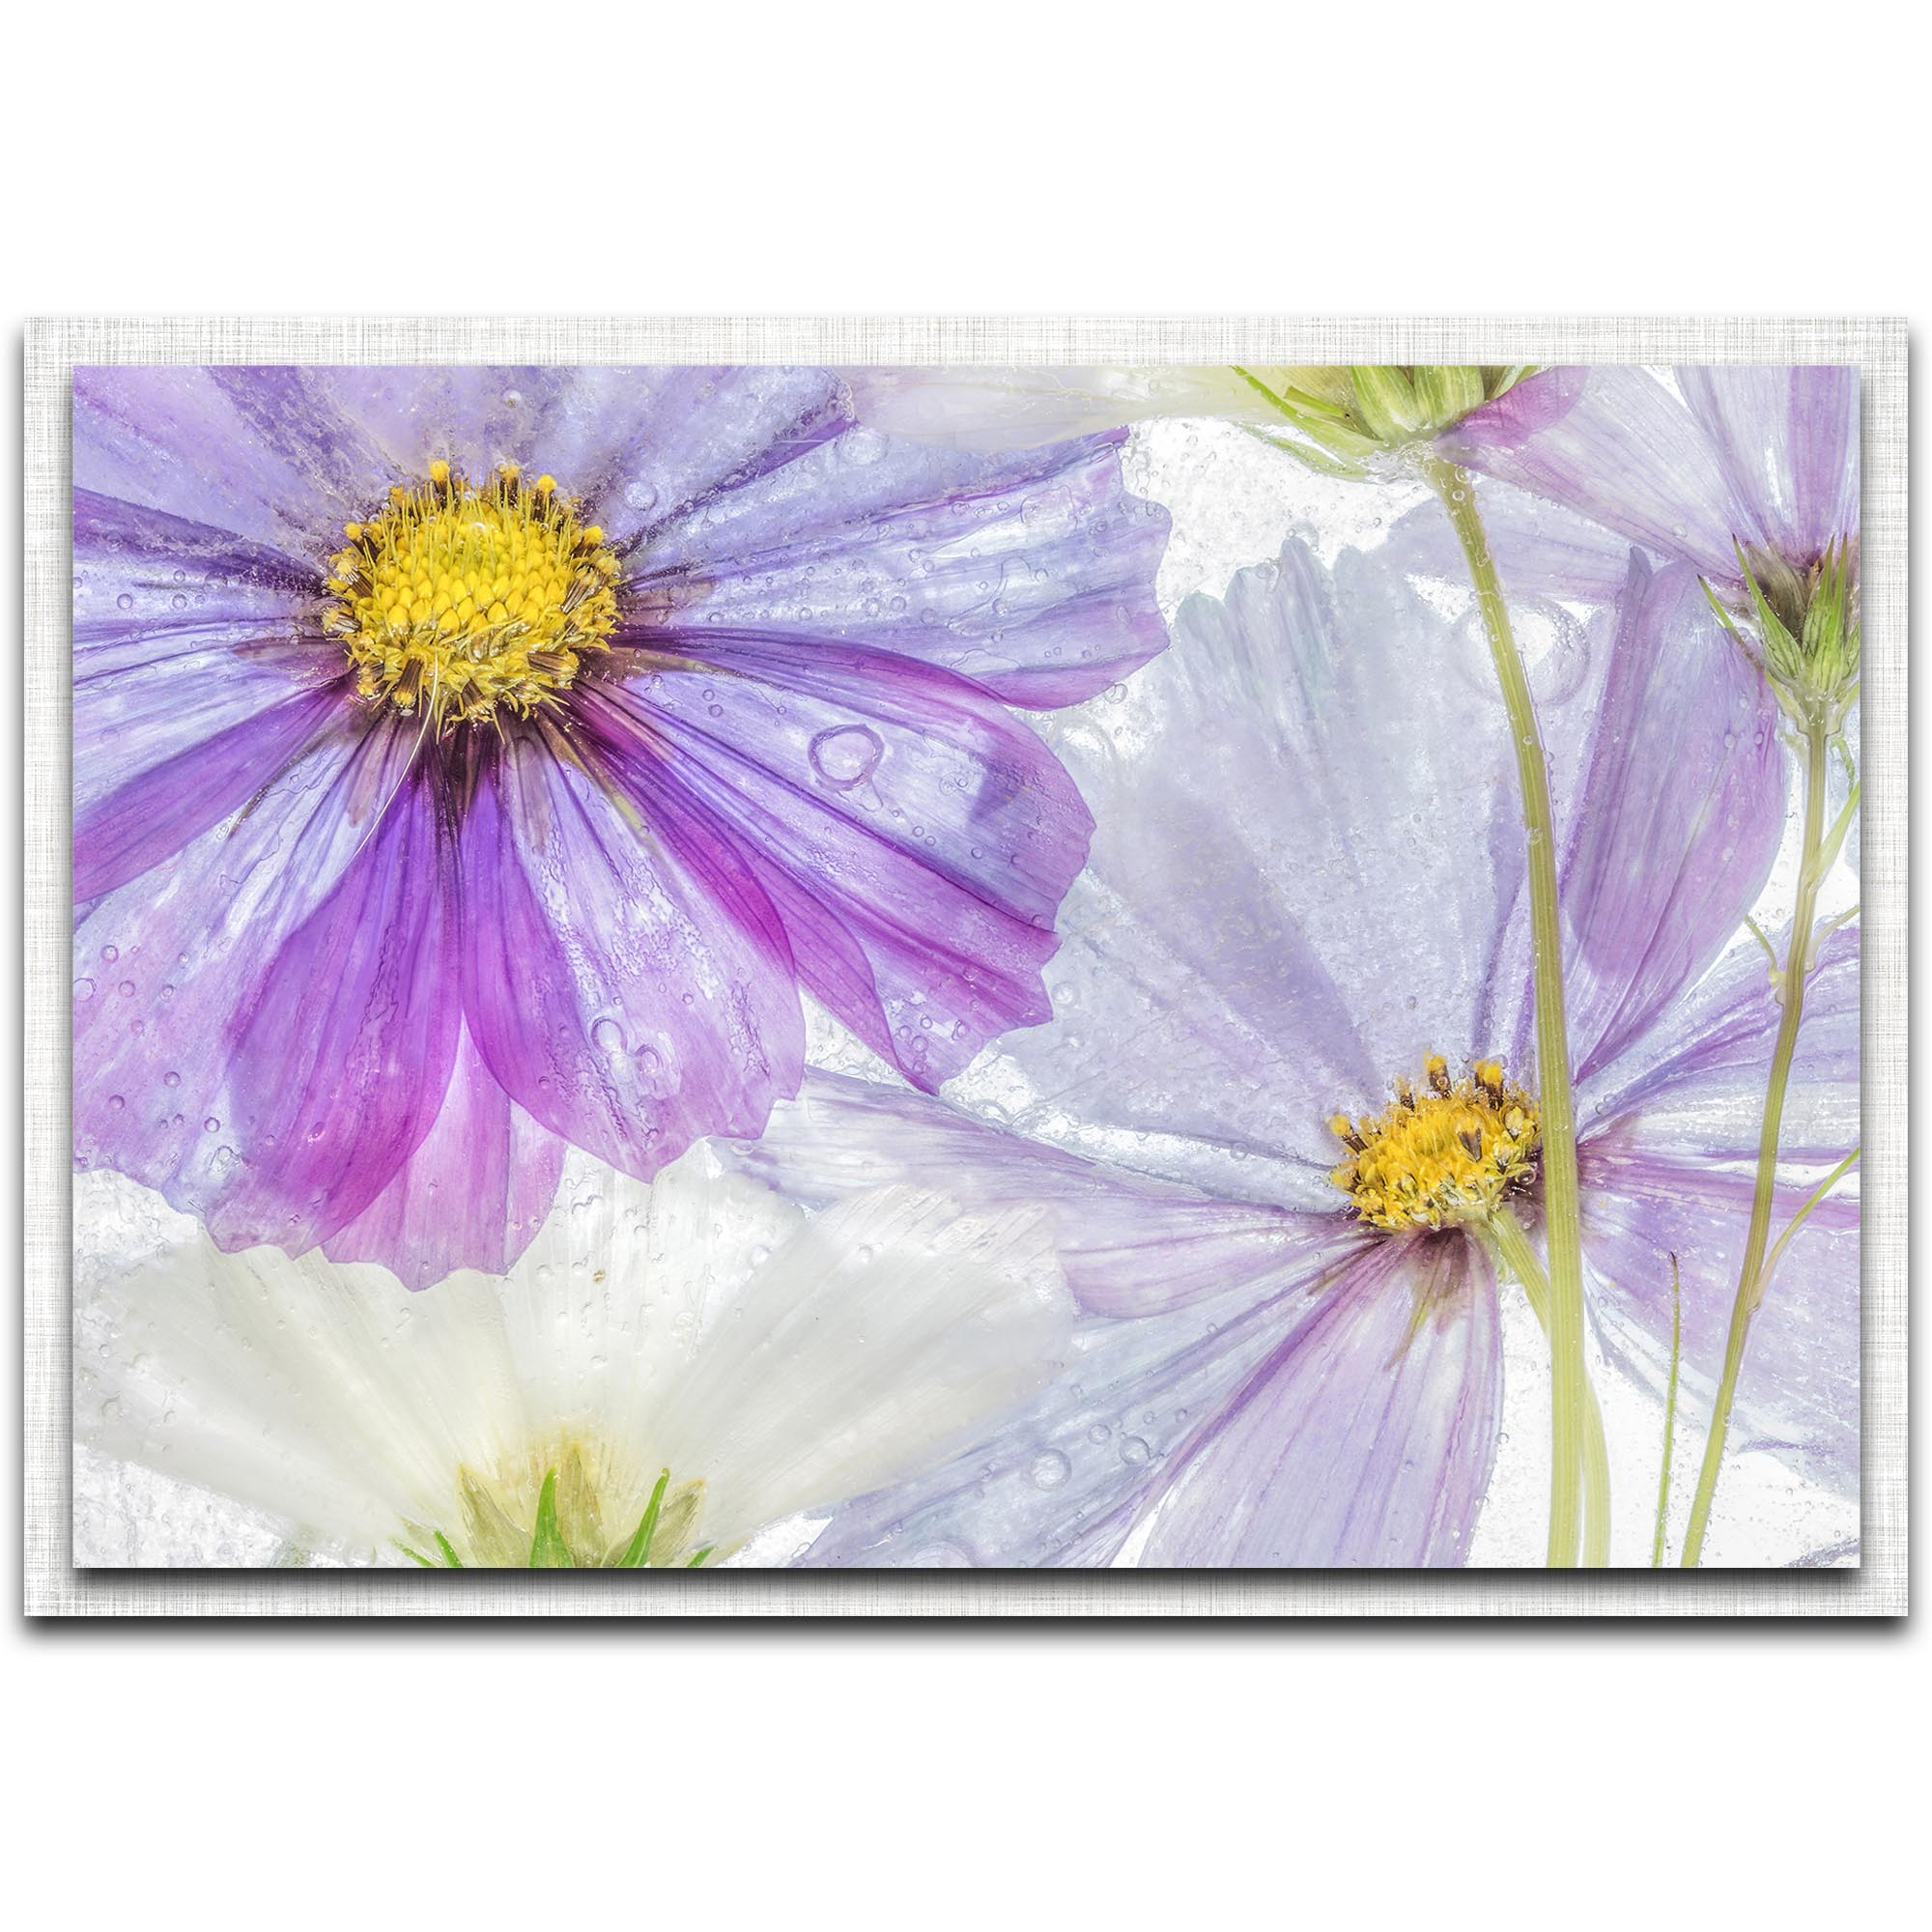 Cosmos Cool by Mandy Disher - Modern Farmhouse Floral on Metal